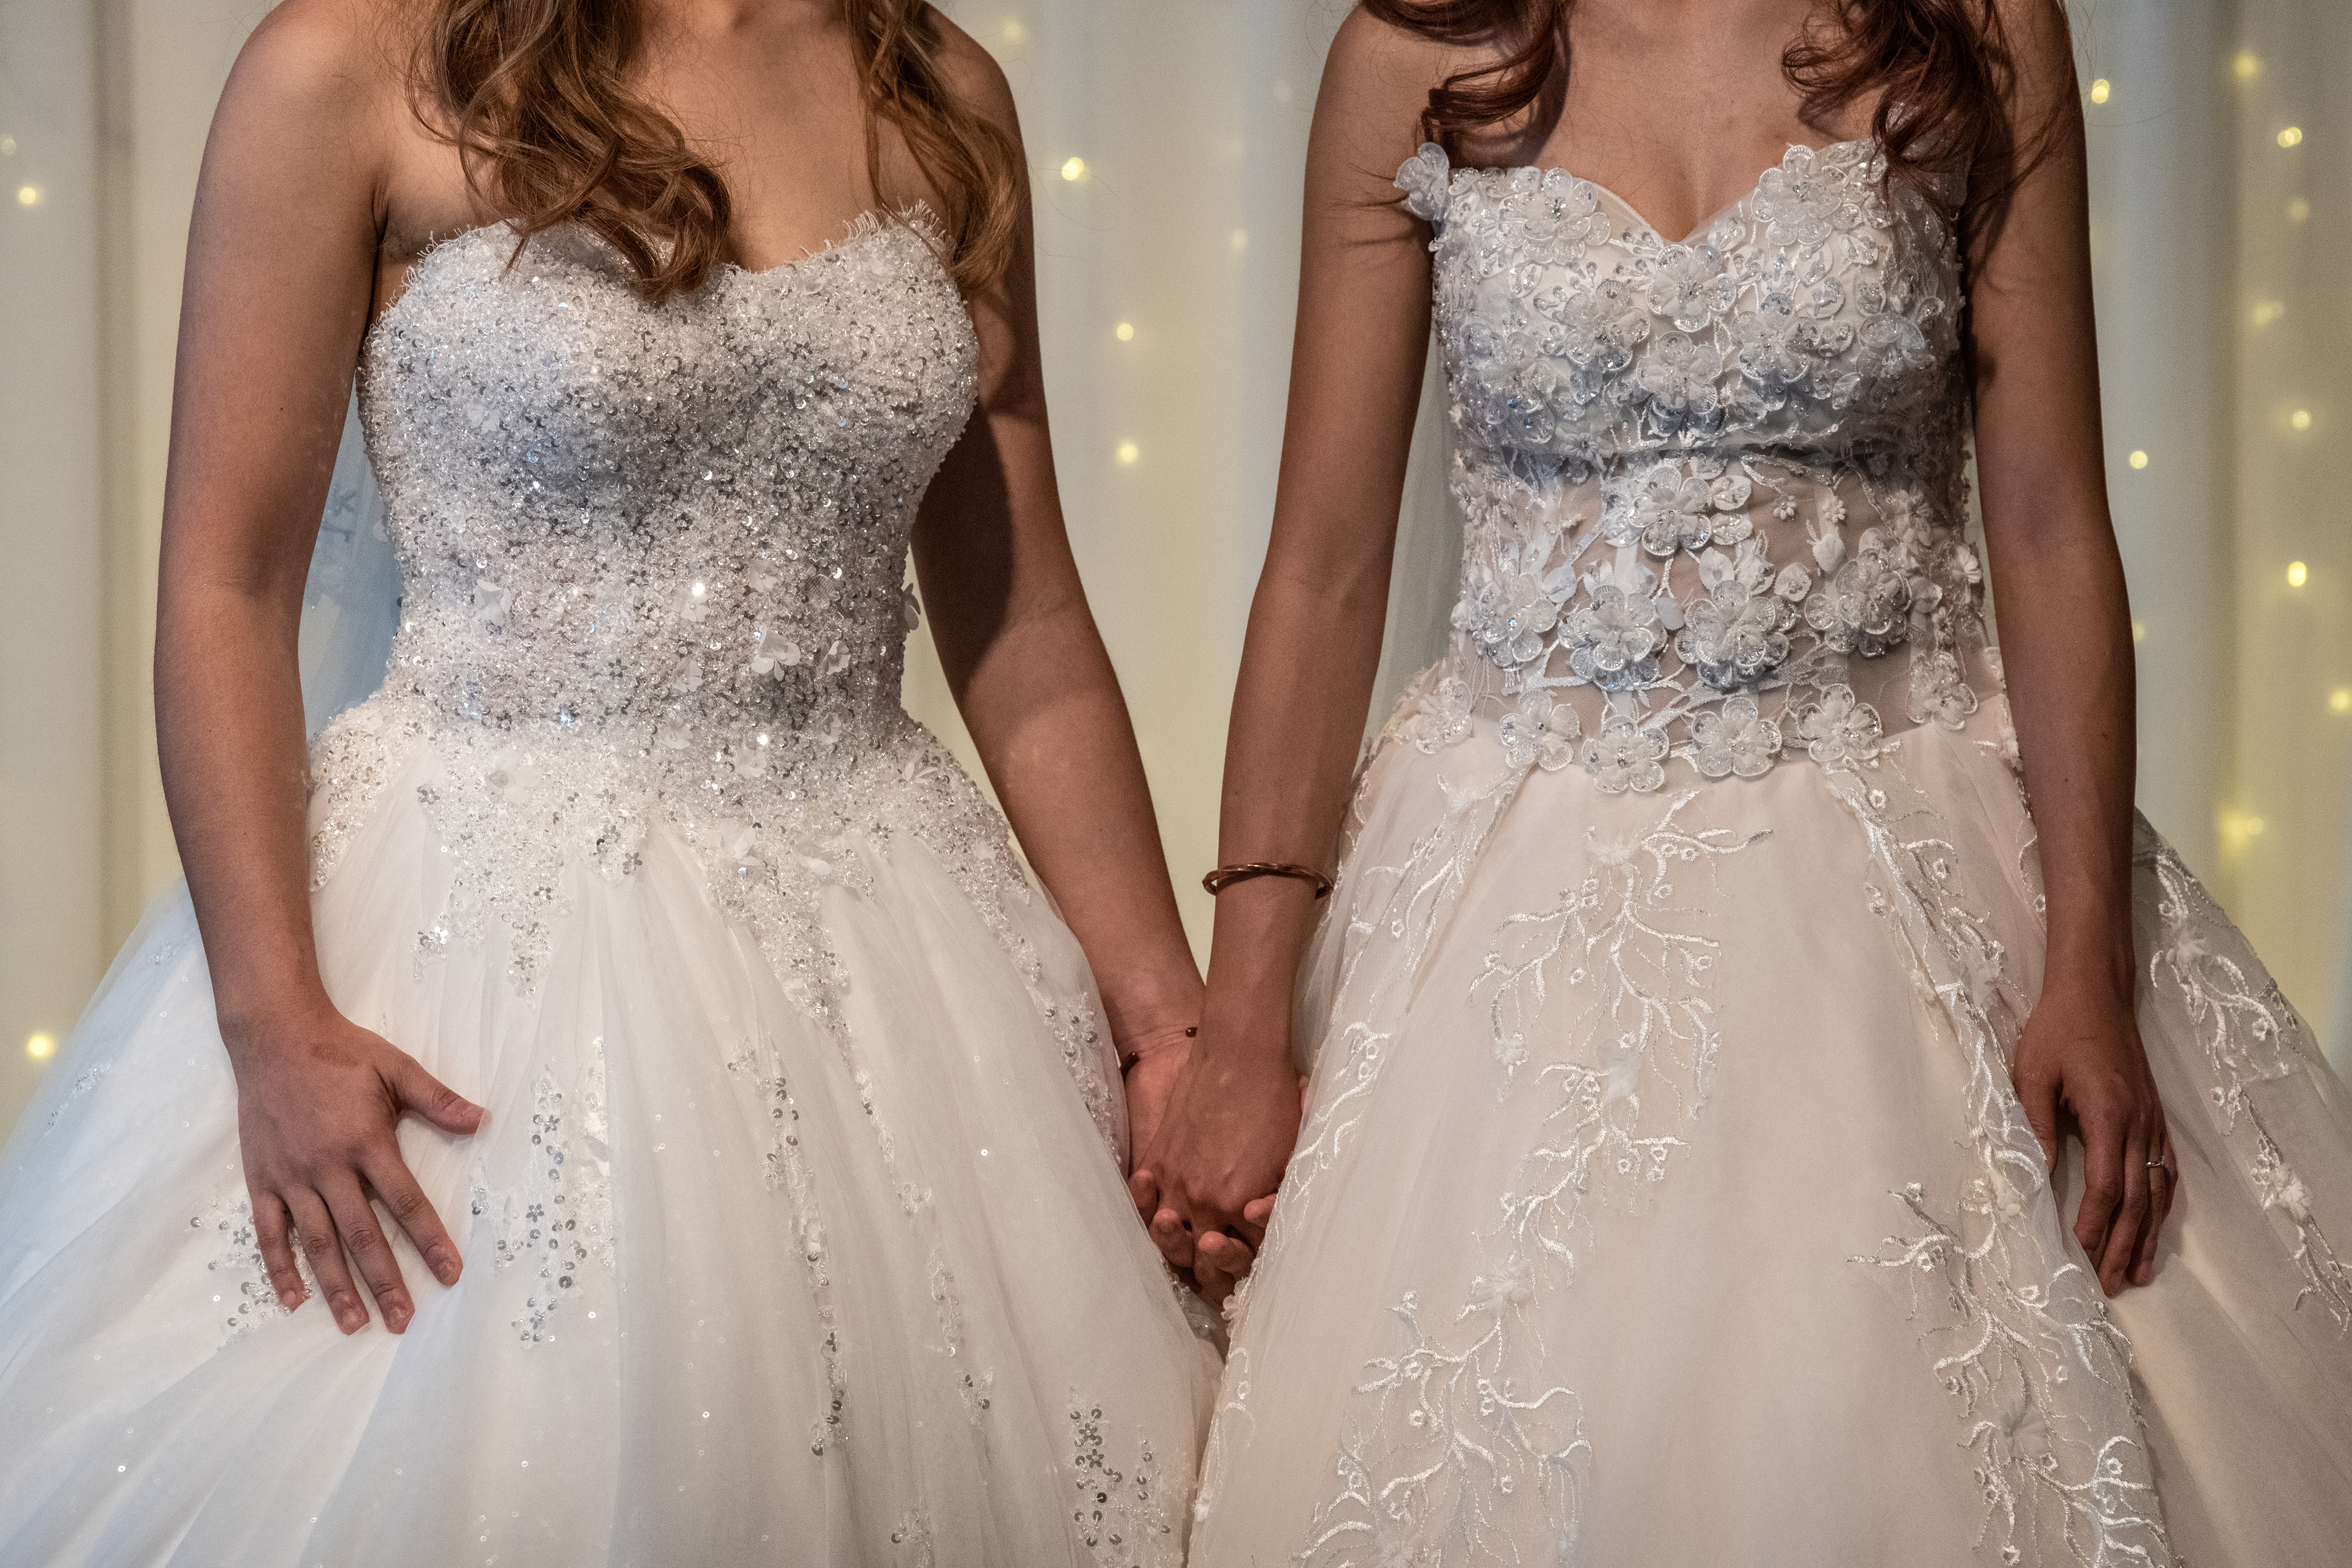 Lesbian couple hold hands wearing wedding dresses.